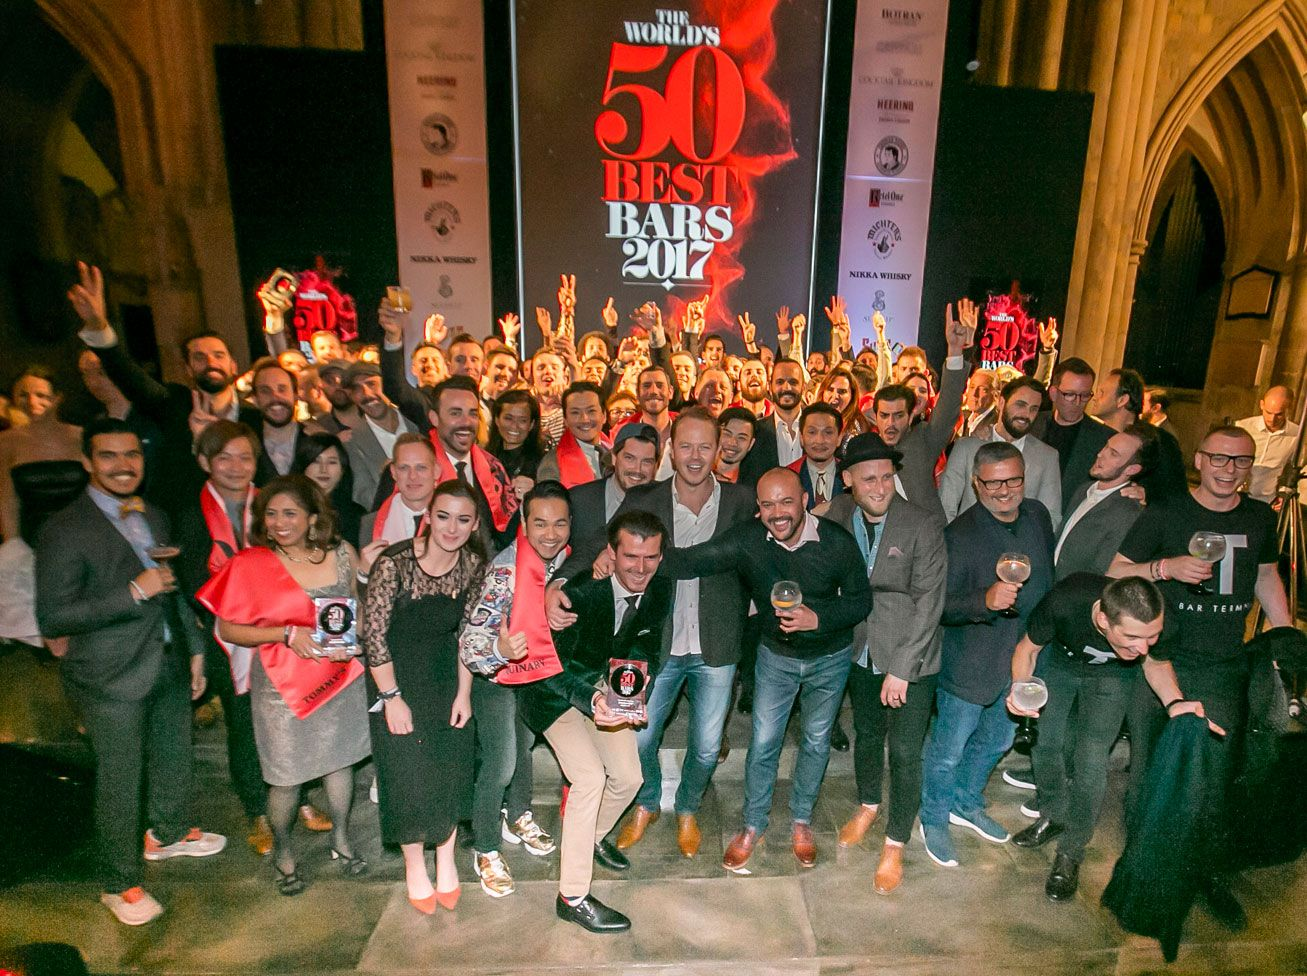 6 Bars In Singapore Make This Year's World's 50 Best Bars List